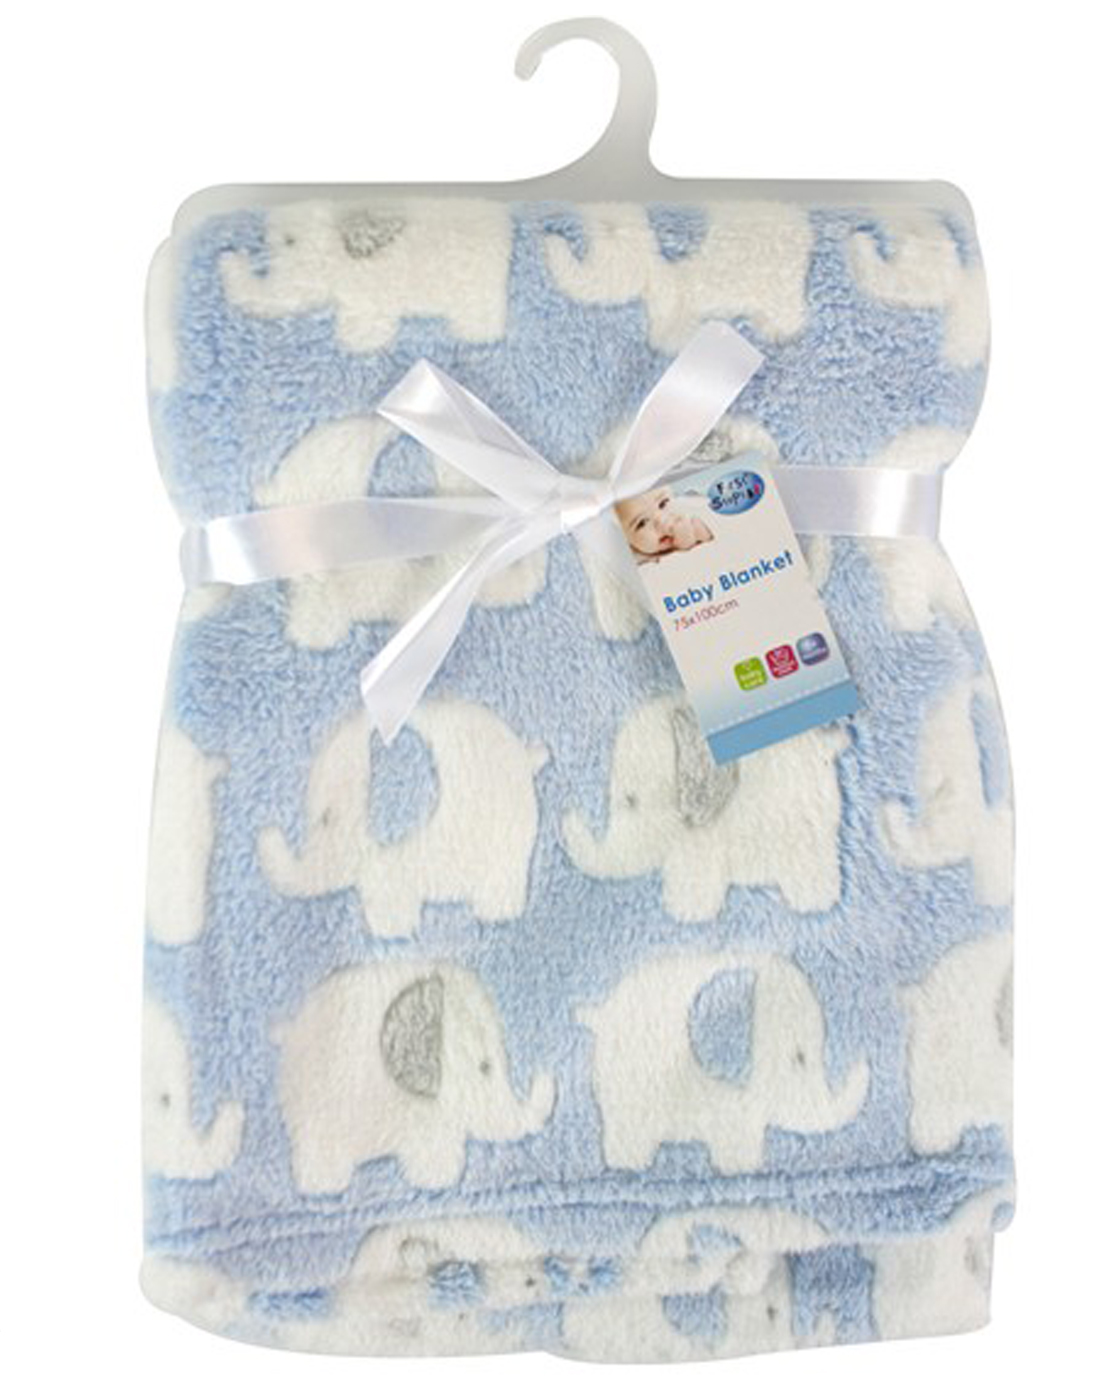 Shop for Baby Blankets in Baby Bedding. Buy products such as Parent's Choice Royal Plush Blanket, Pink, 1 Pack at Walmart and save.